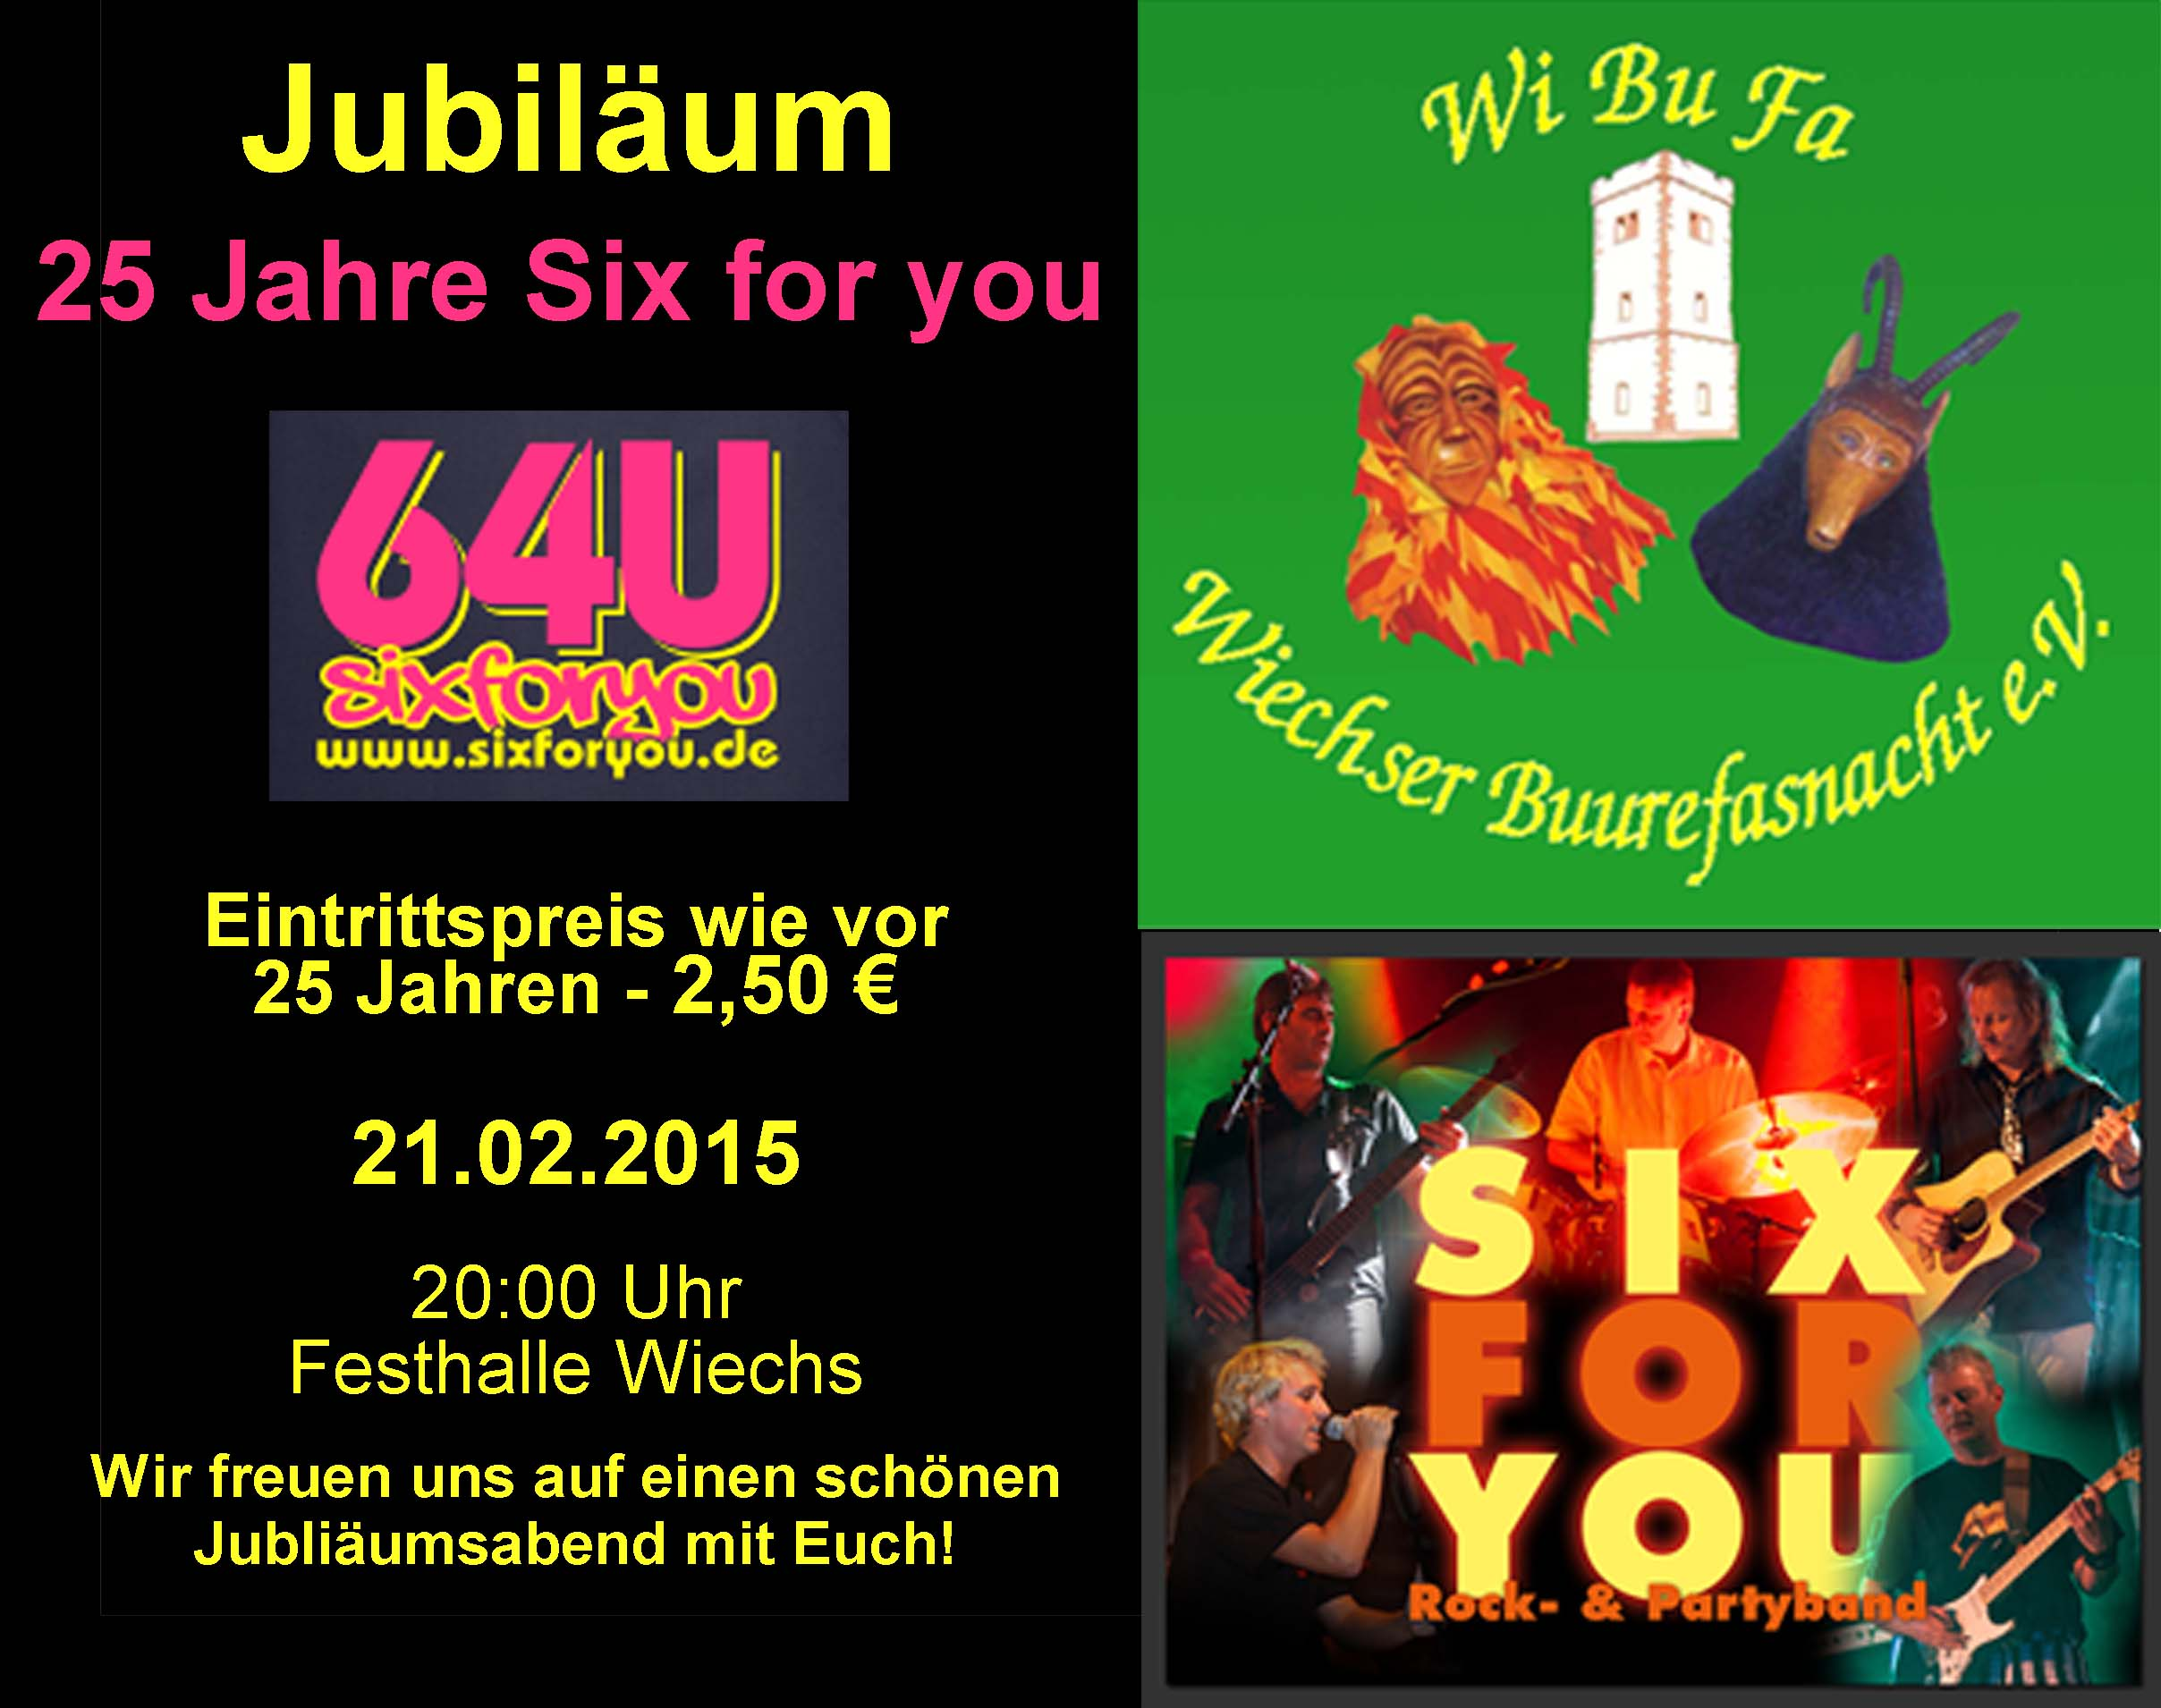 Jubiläum 25 Jahre Six for you